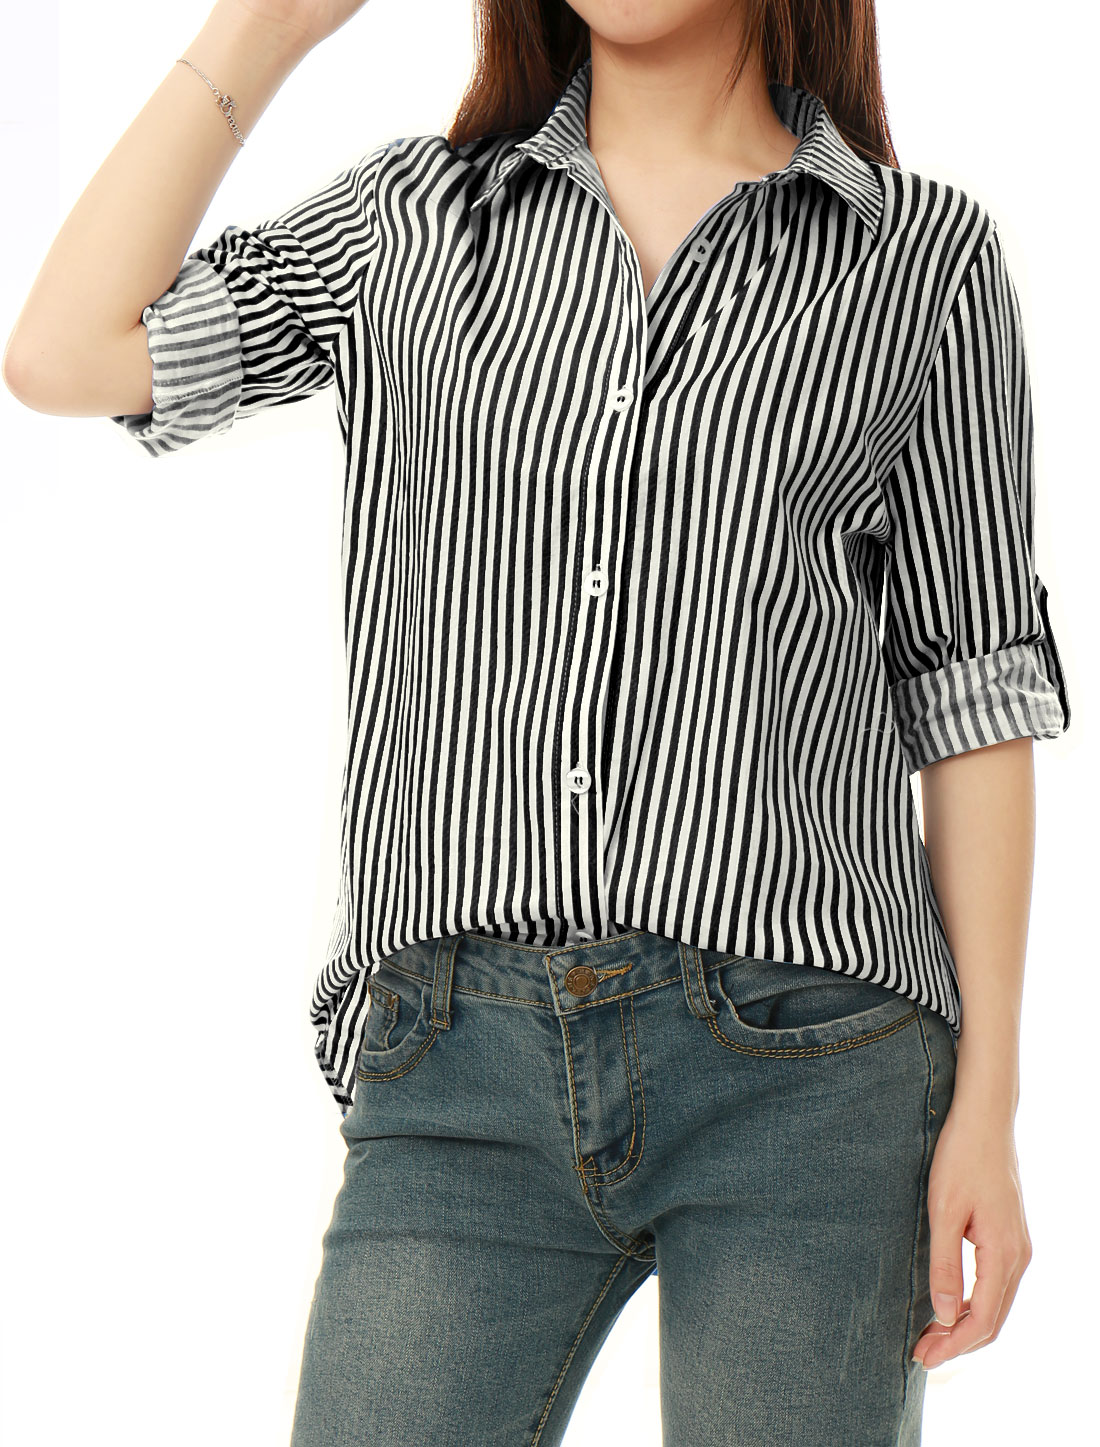 Women Striped High Low Hem Roll Up Sleeves Shirt Black White XL